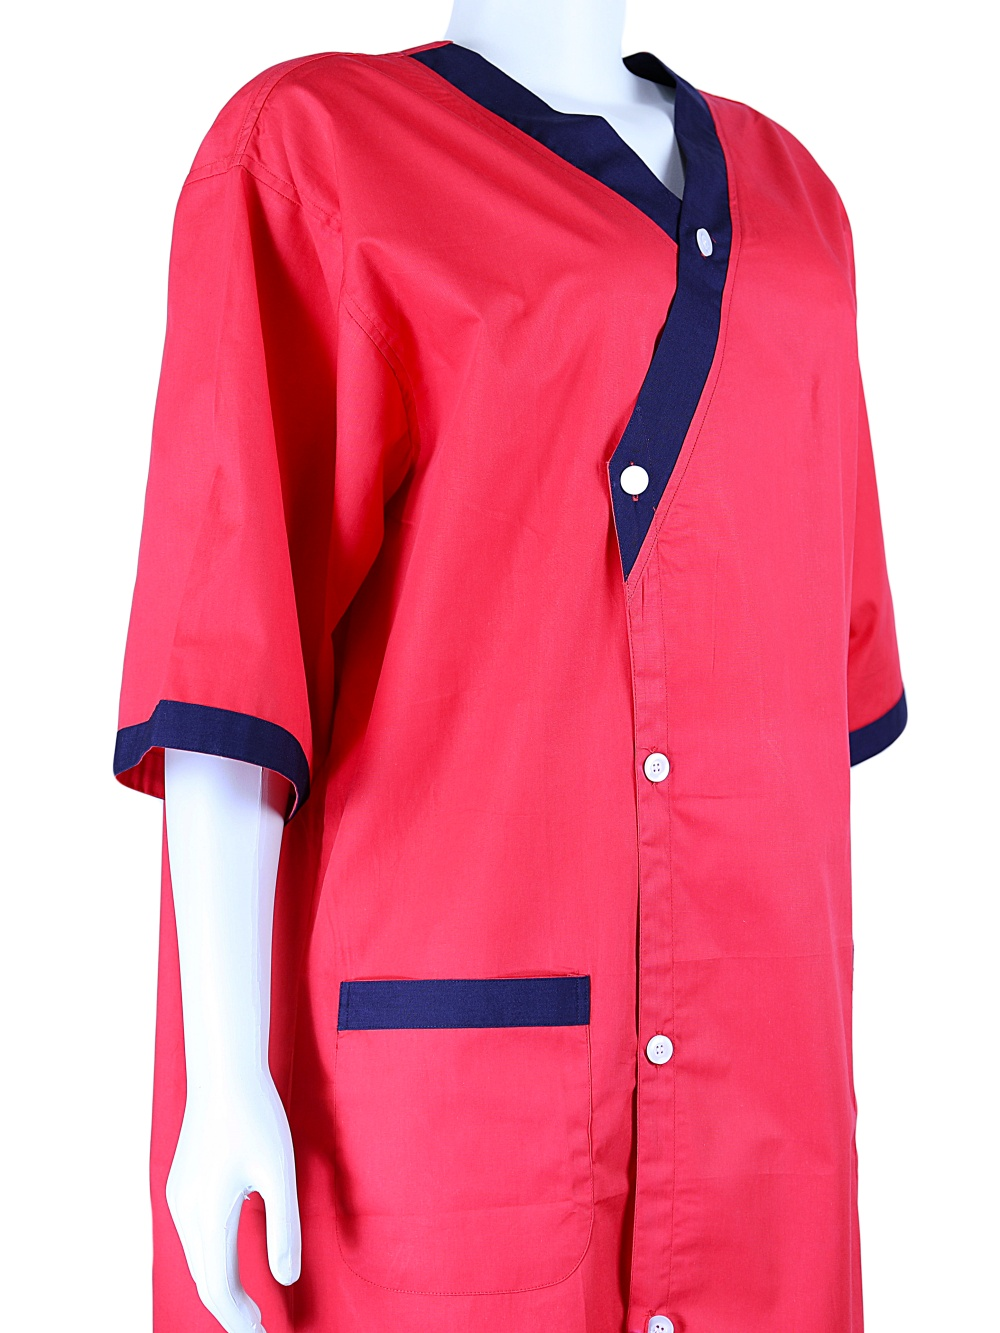 Exam Gown-F09